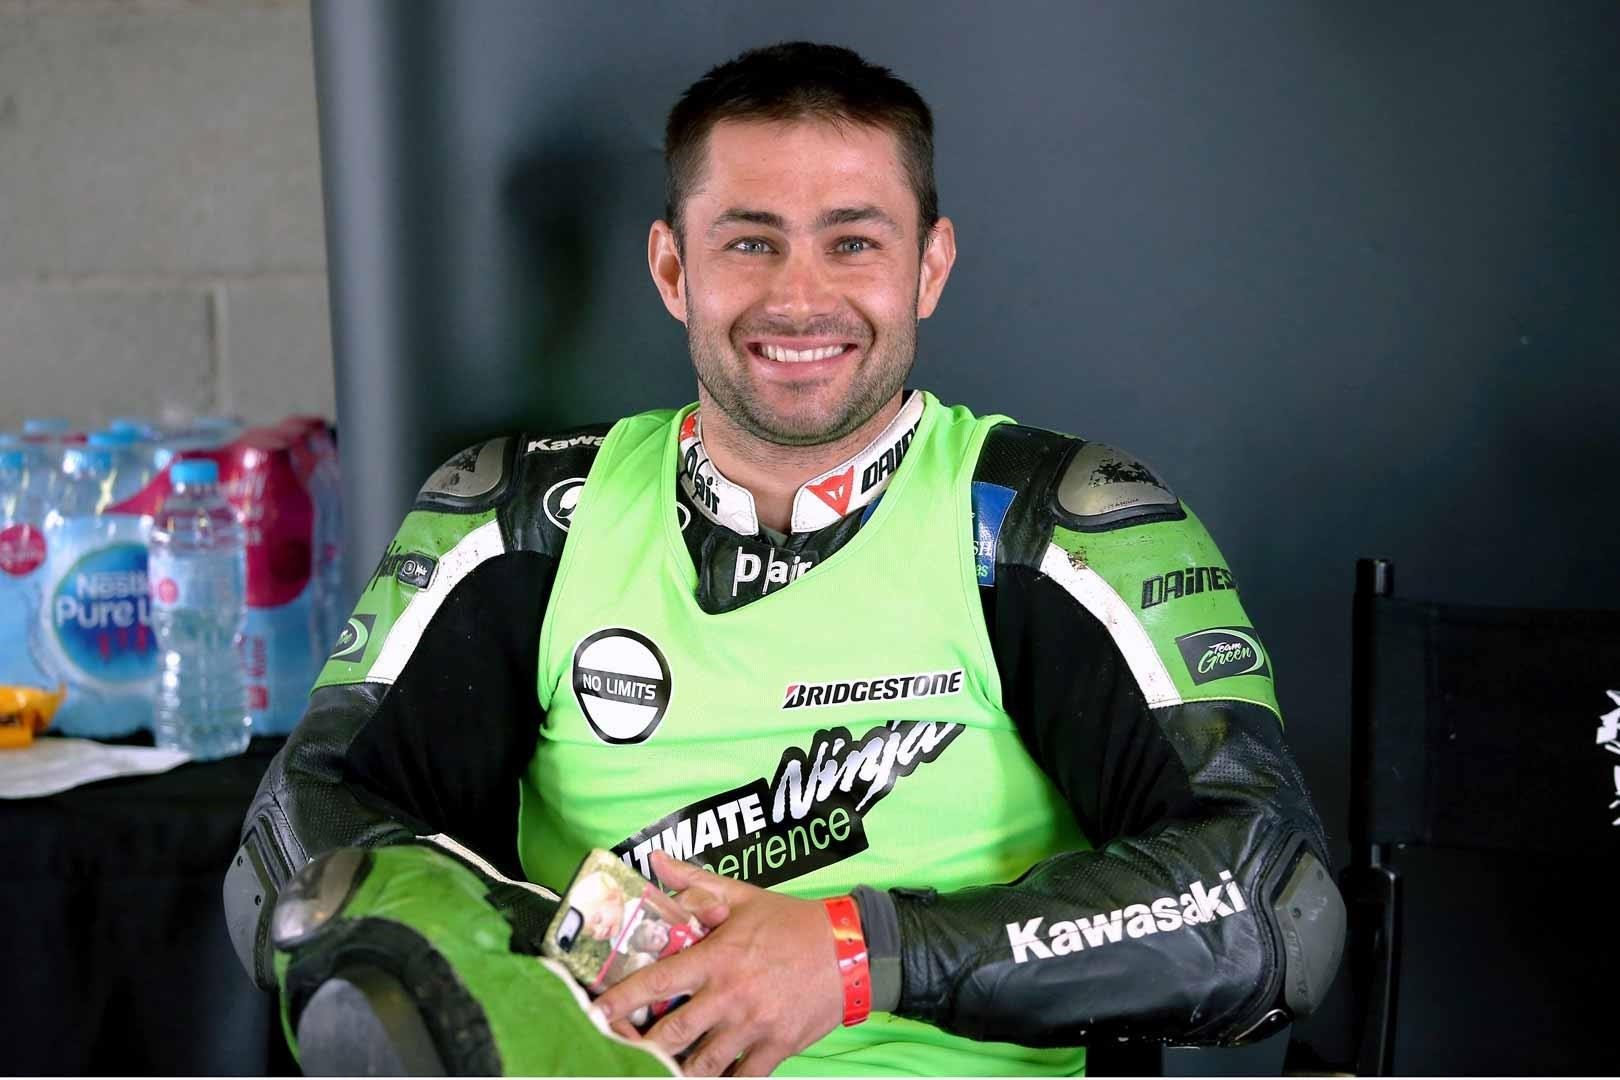 Leon Haslam will be in attendance